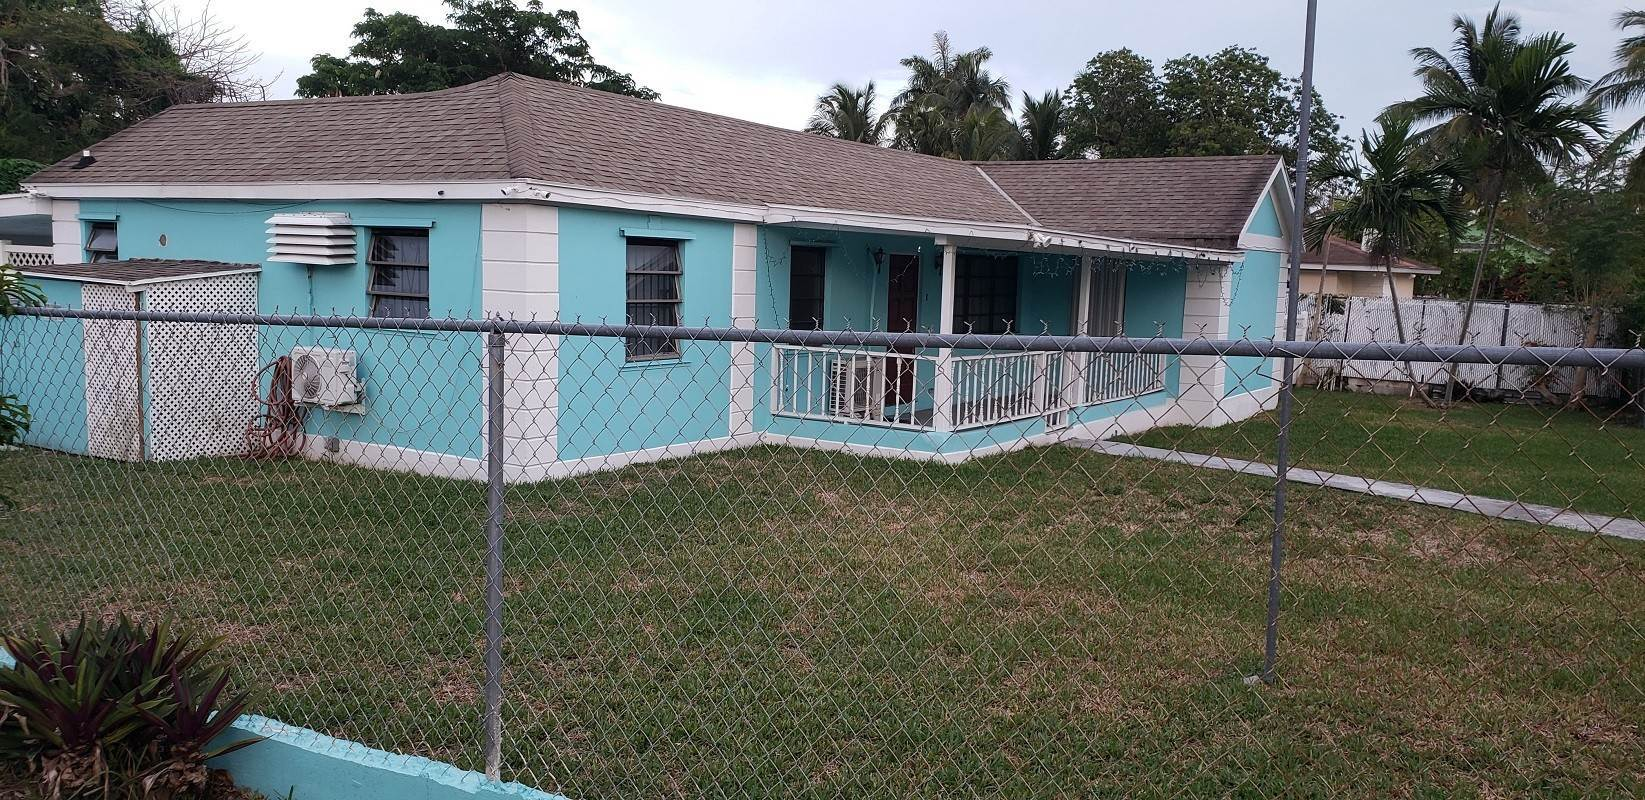 Single Family Homes for Rent at 3 Bed 2 Bath Residence #7 Vanga Court, Blair Estates - MLS 42319 Blair Estates, Eastern Road, Nassau And Paradise Island Bahamas